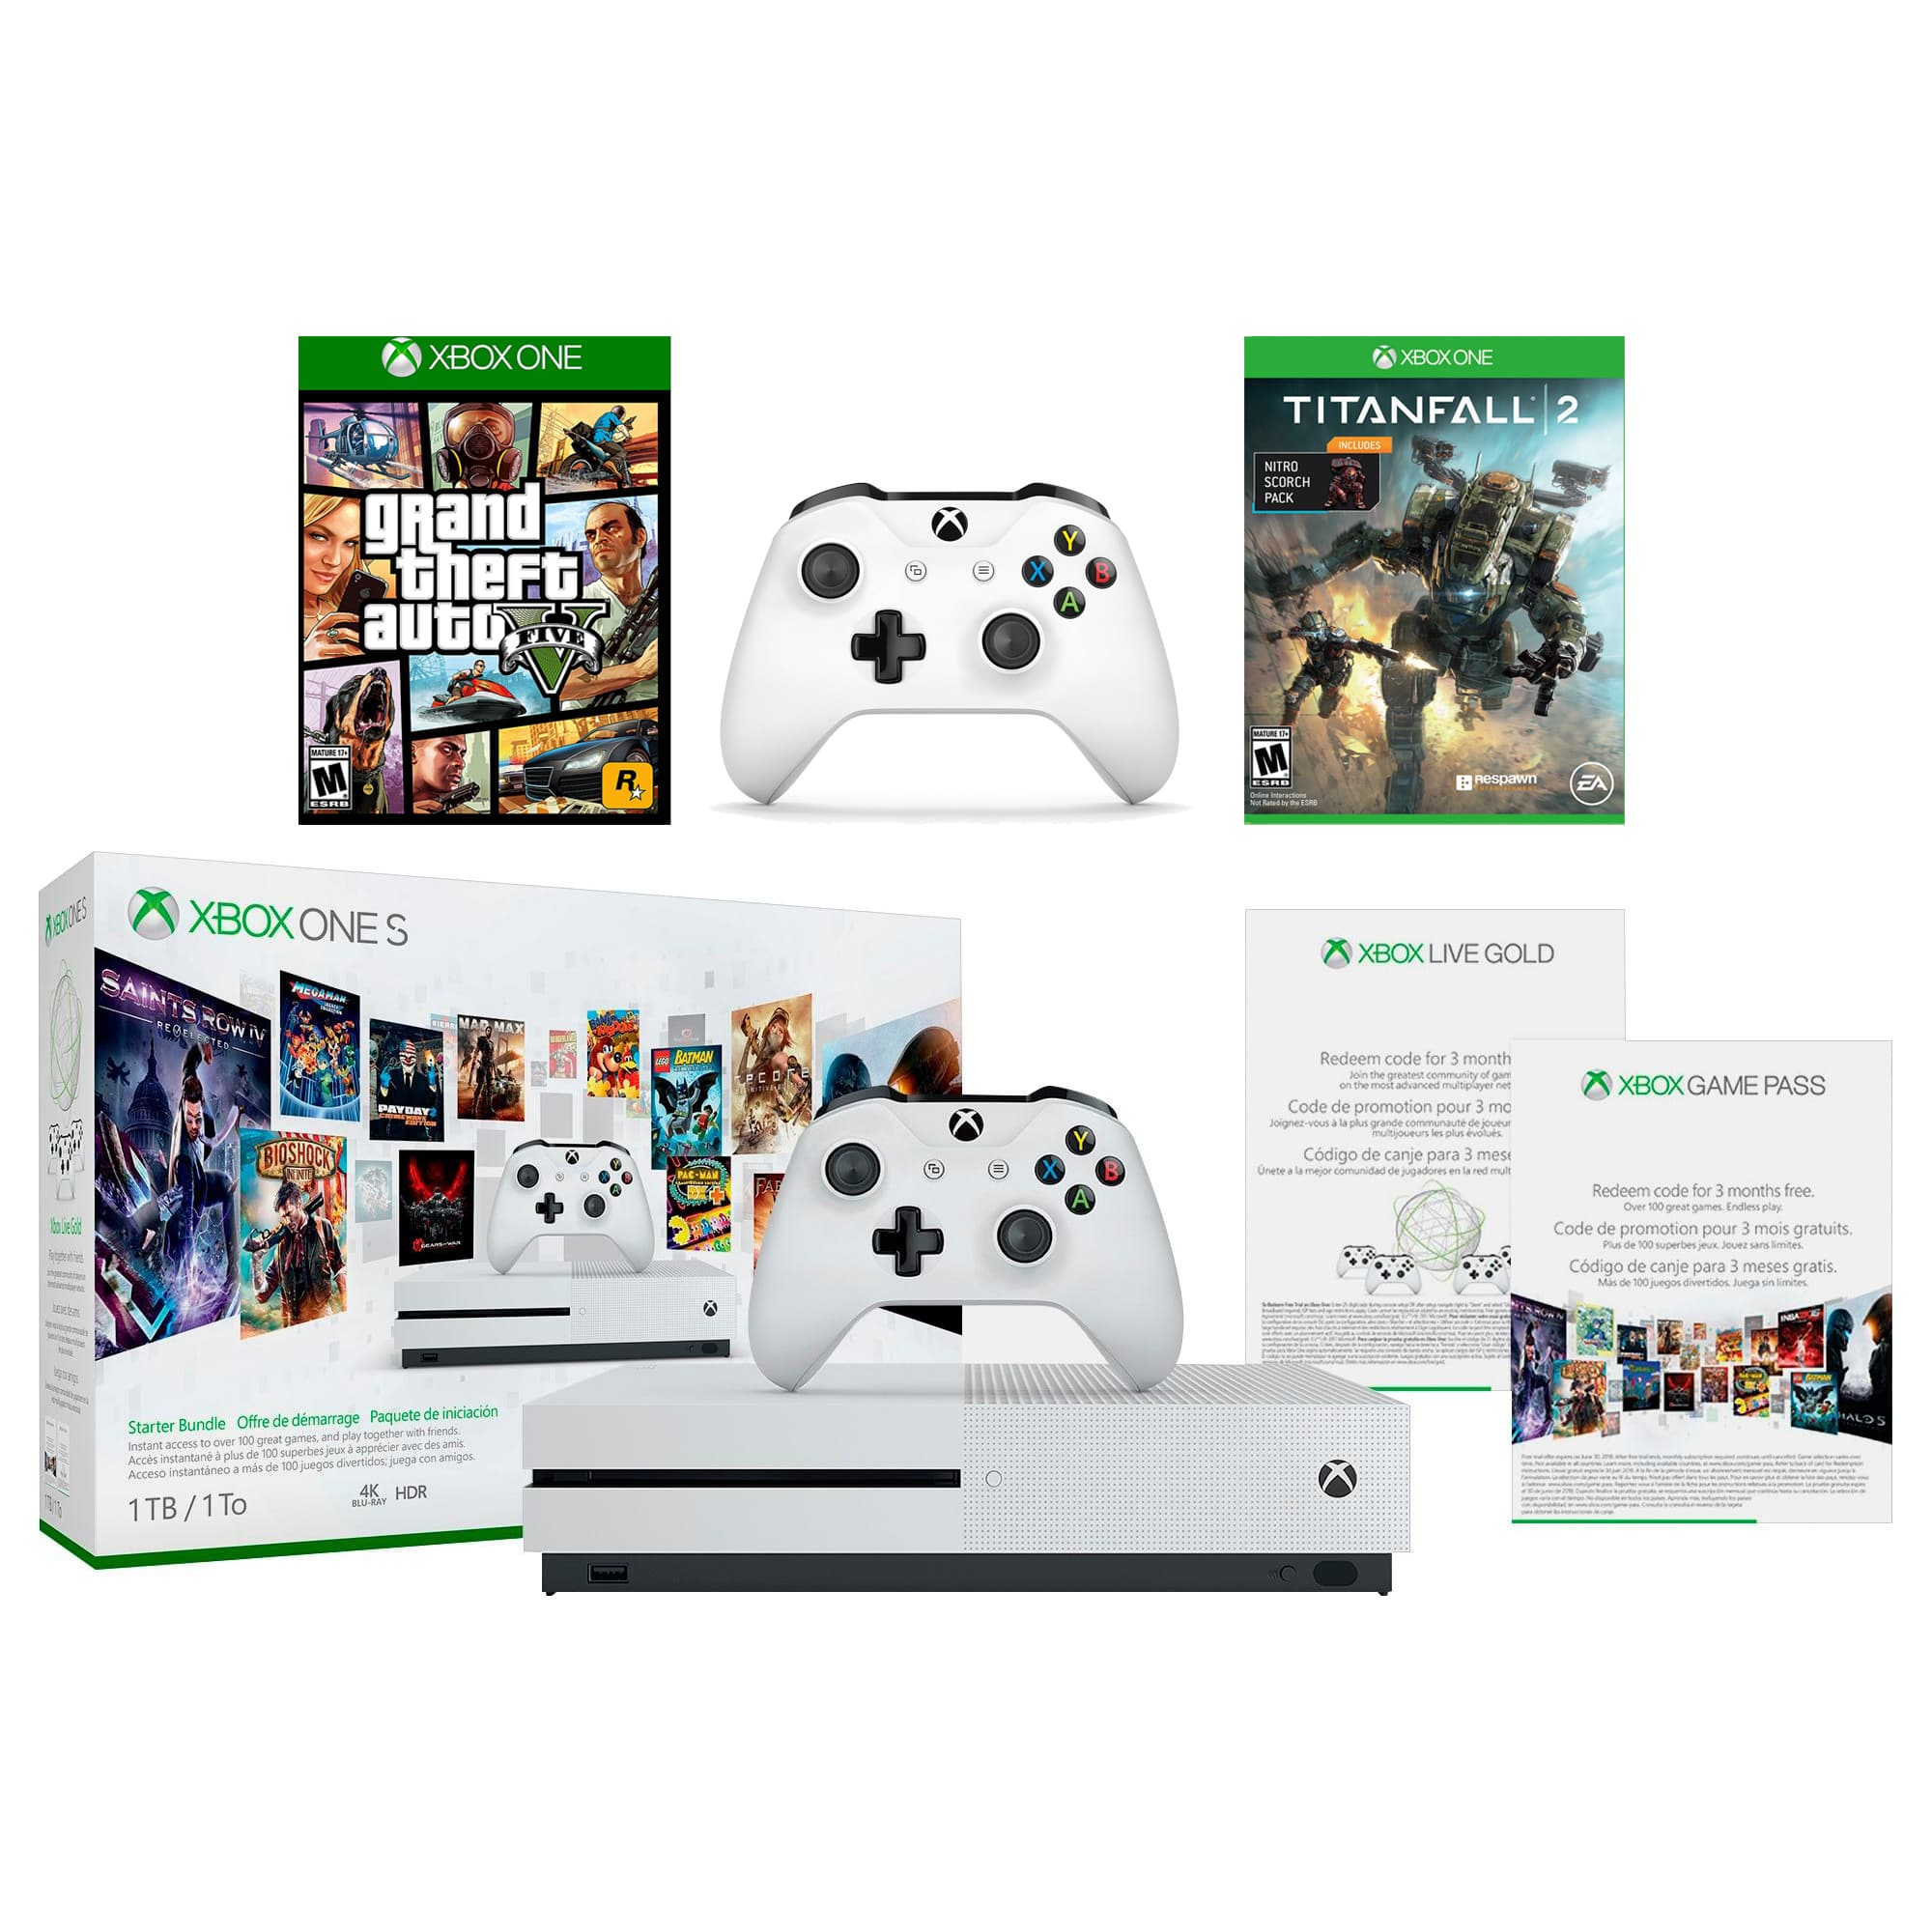 1TB Xbox One S Console + GTA V + Titanfall 2 + Extra Controller